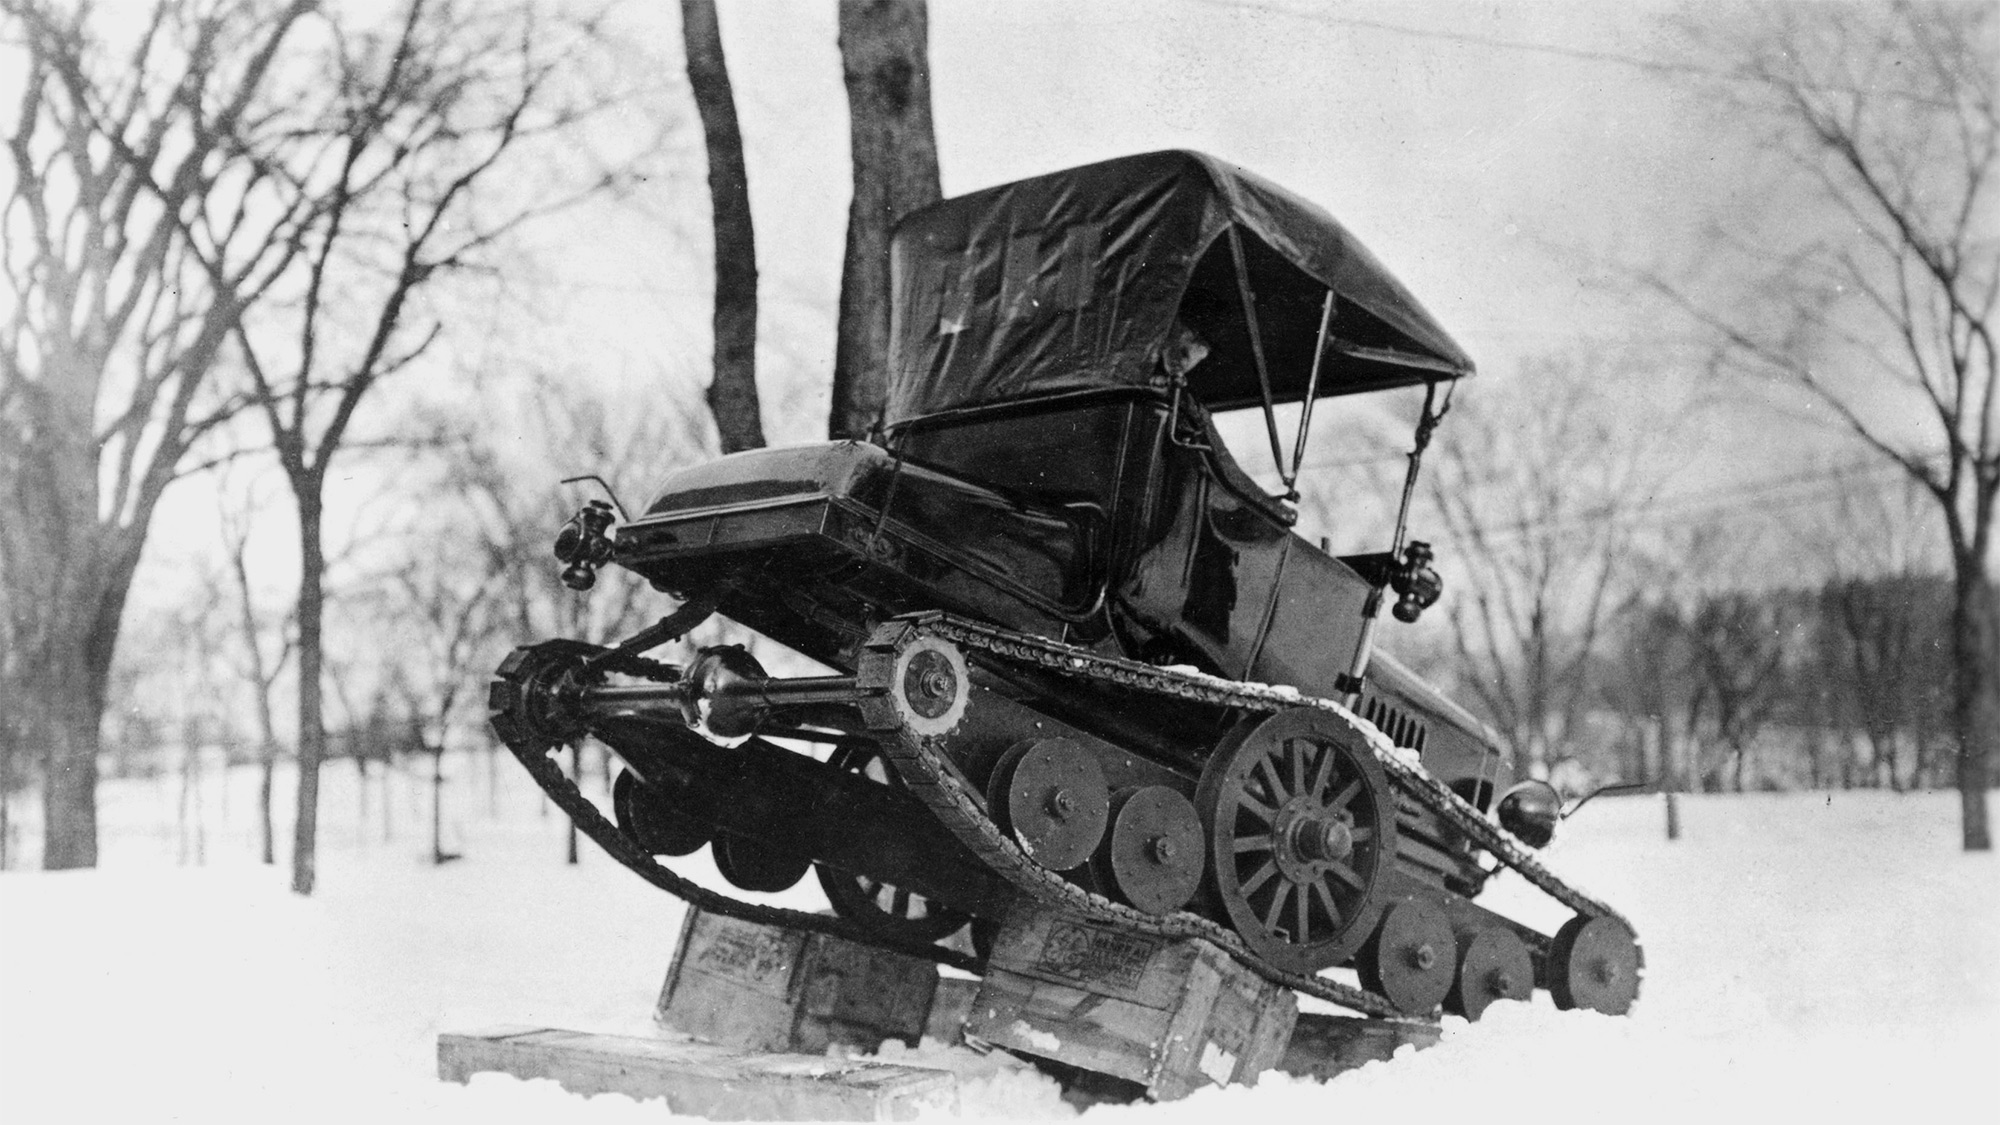 Ford Model T Snowmobile (1922)